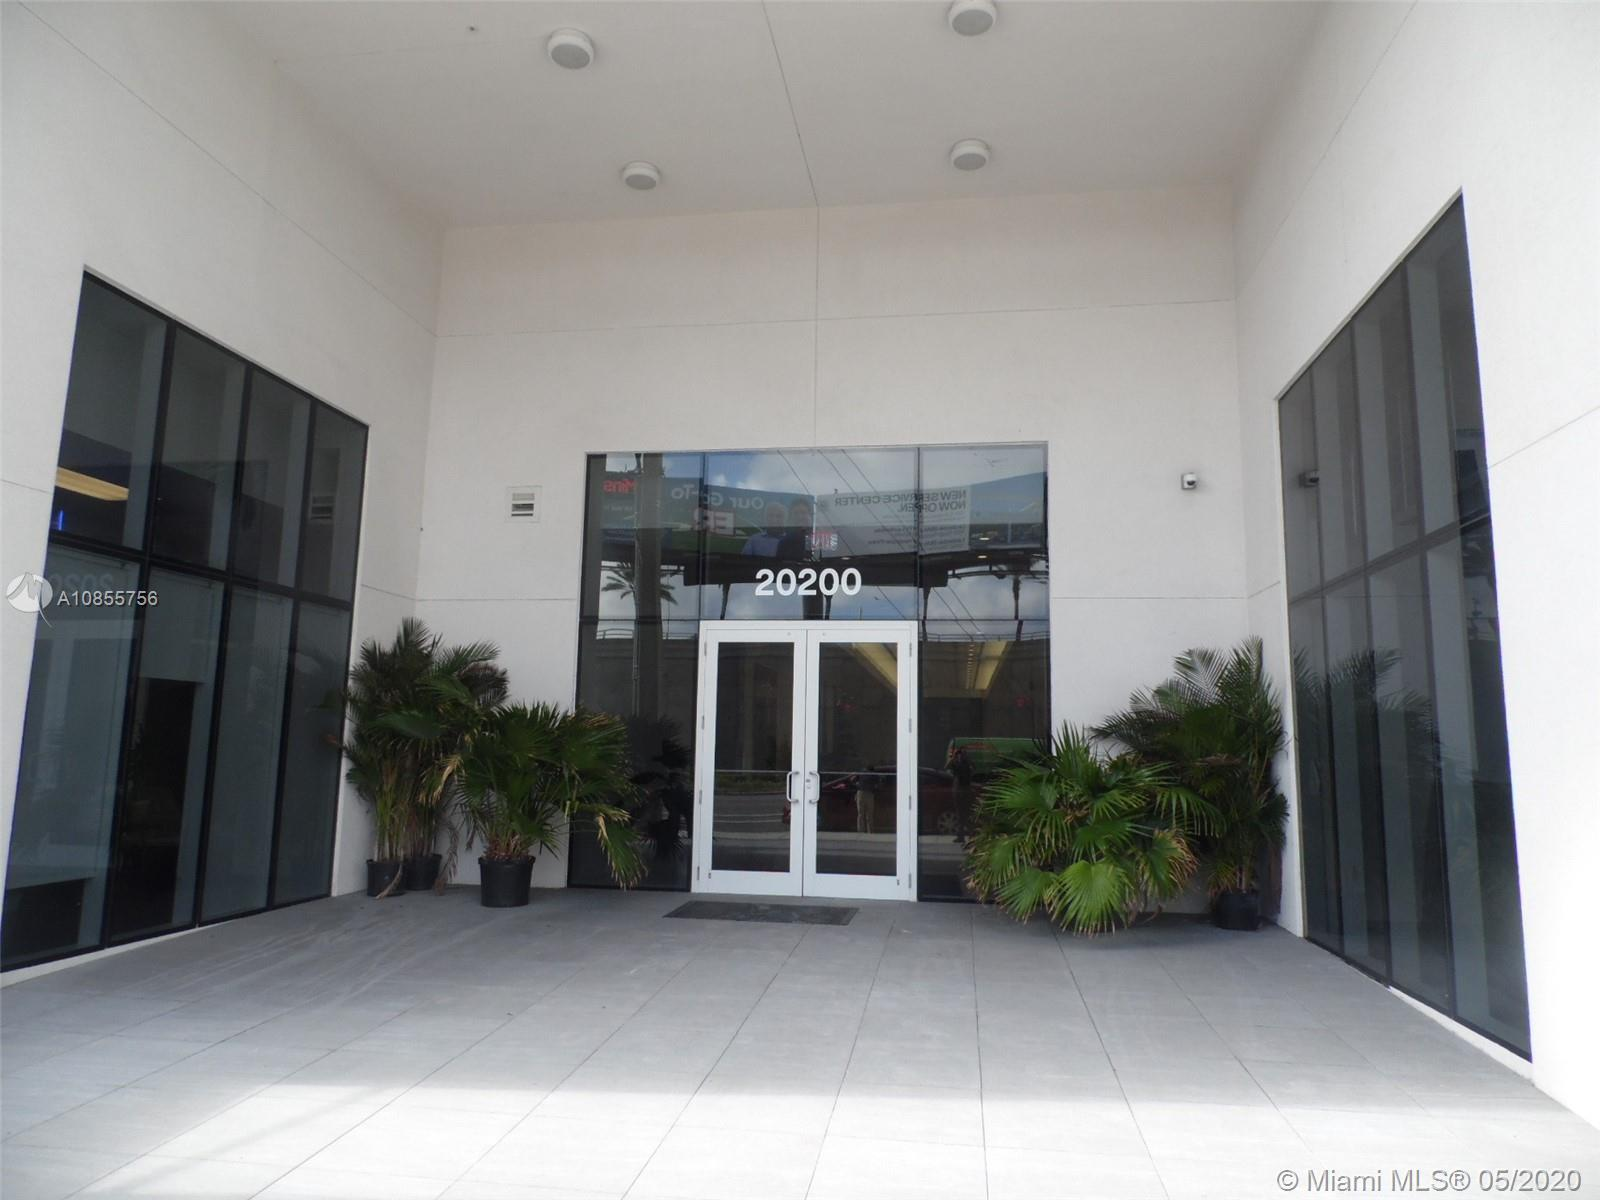 This office are located in a building class A in Aventura FL. Have an access to the rooftop garden p